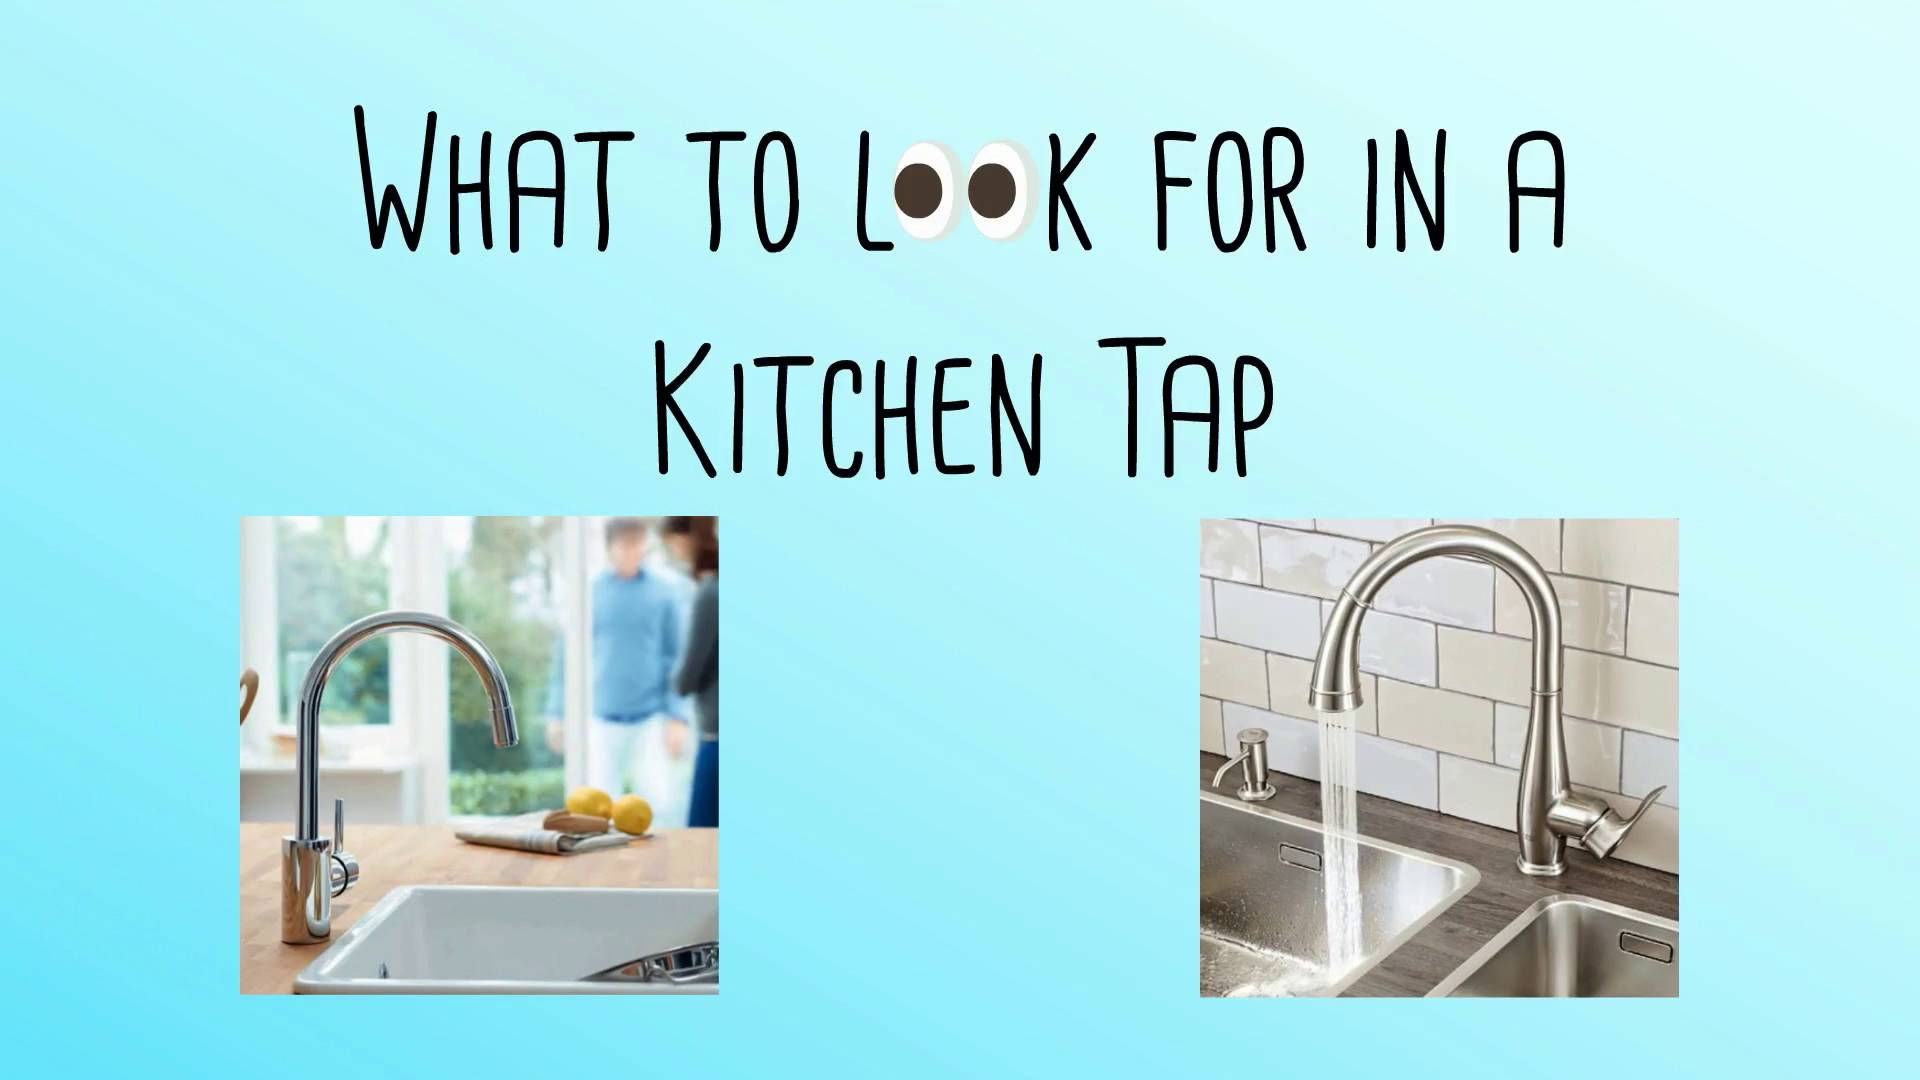 Kitchen Sink Mixer Taps | Ergonomic Designs